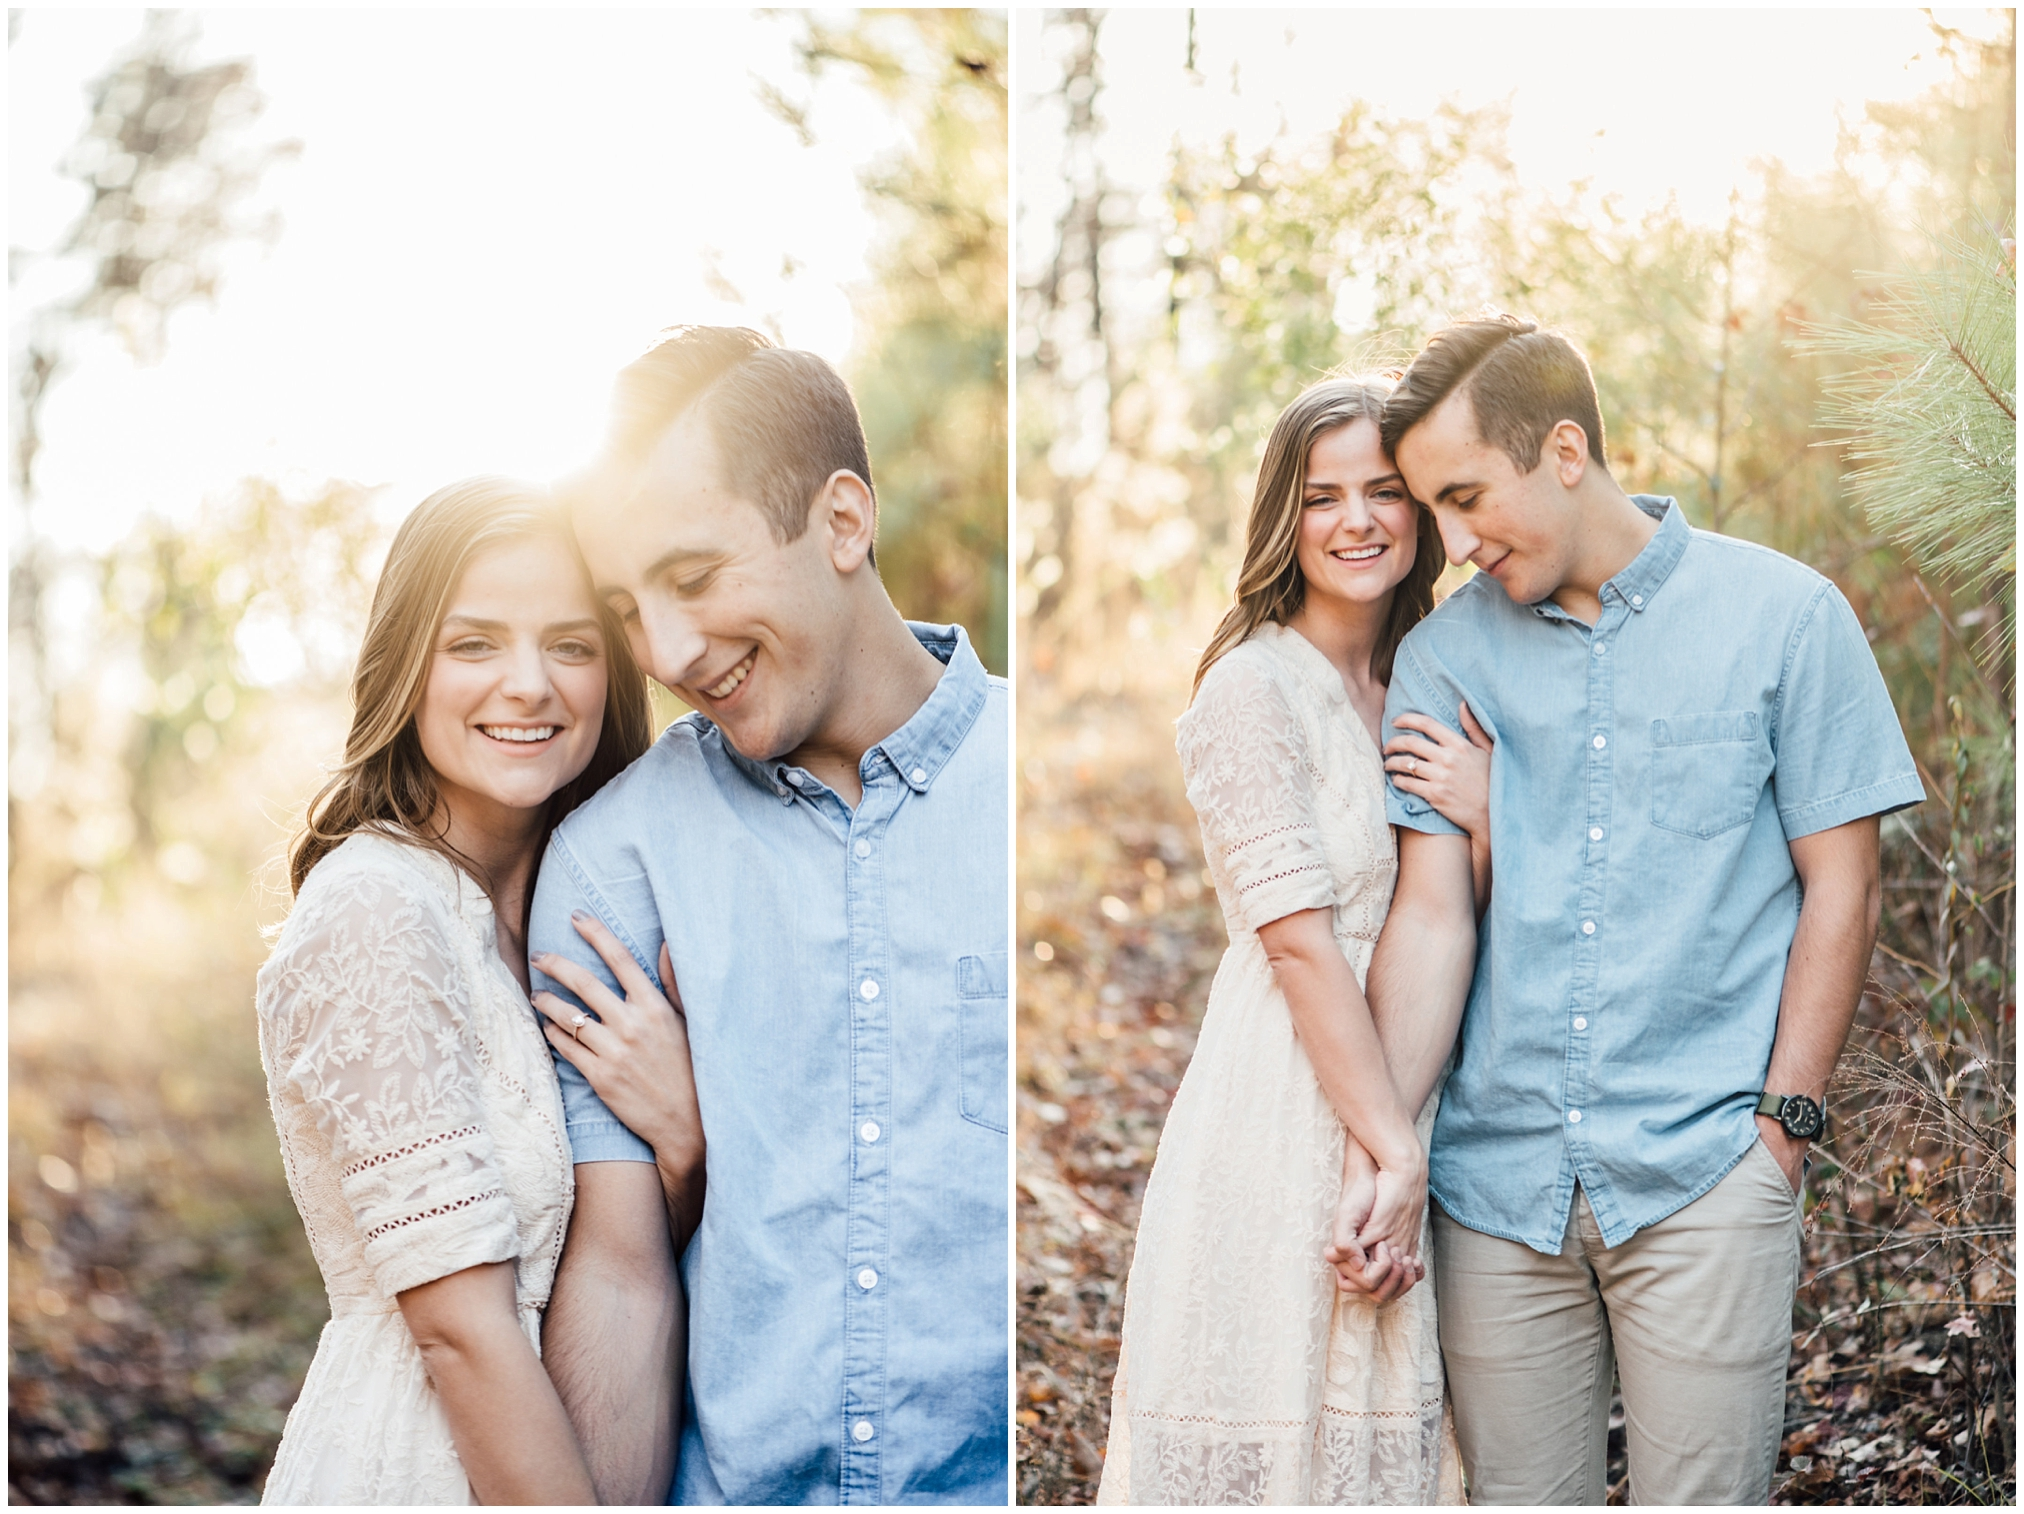 lindsey ann photography, wedding photographer, birmingham wedding photographer, alabama wedding photographer, moss rock preserve, moss rock engagement